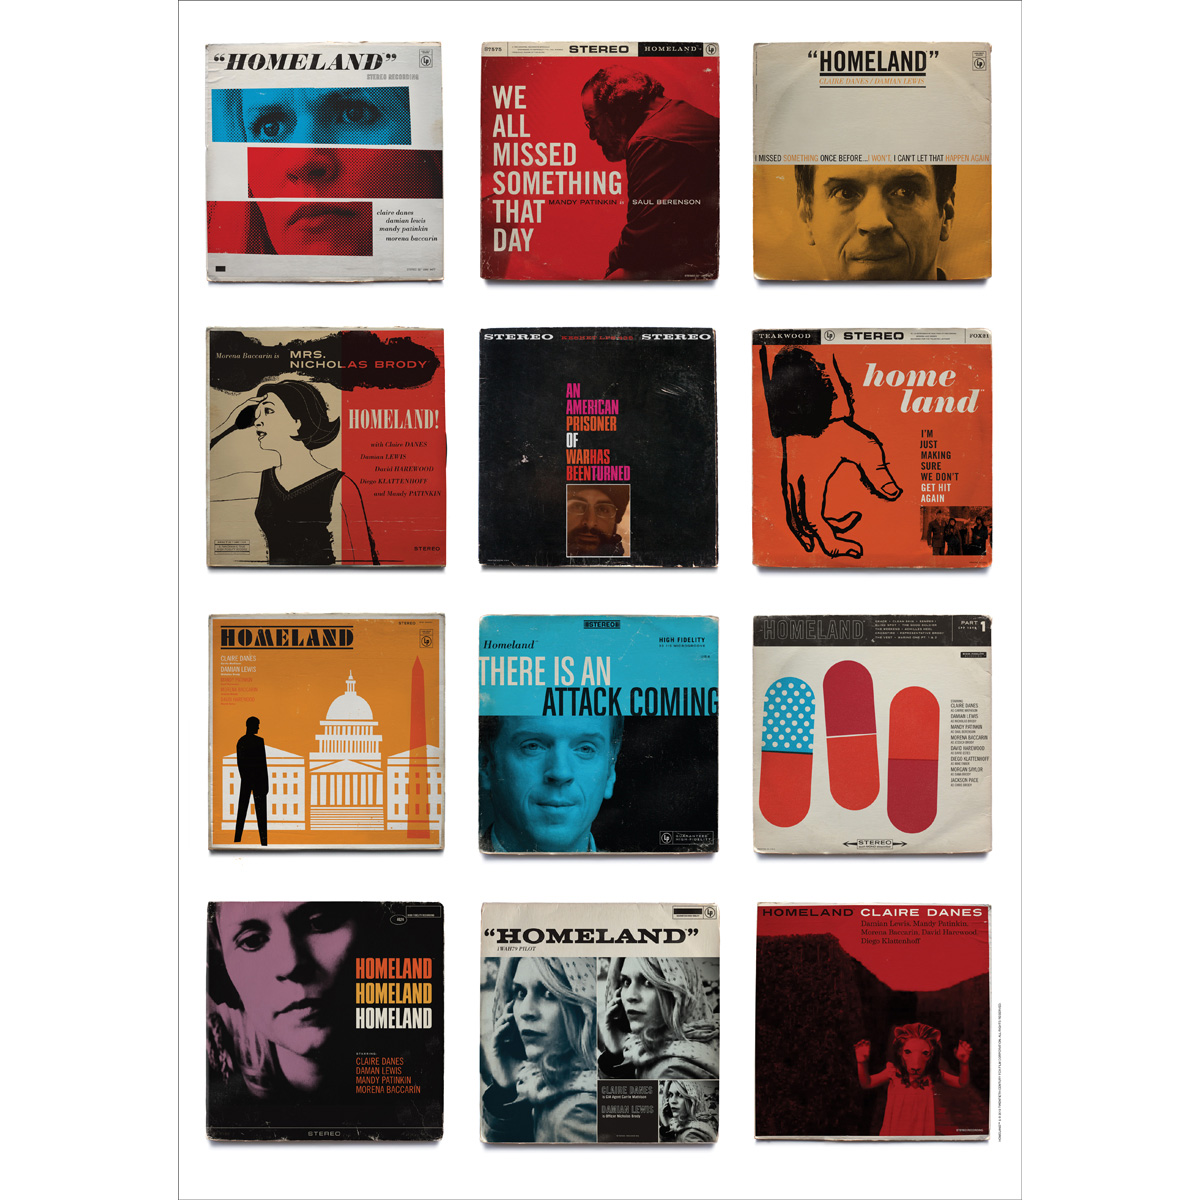 Homeland Vintage Jazz Collector's Edition Lithograph [24x34]